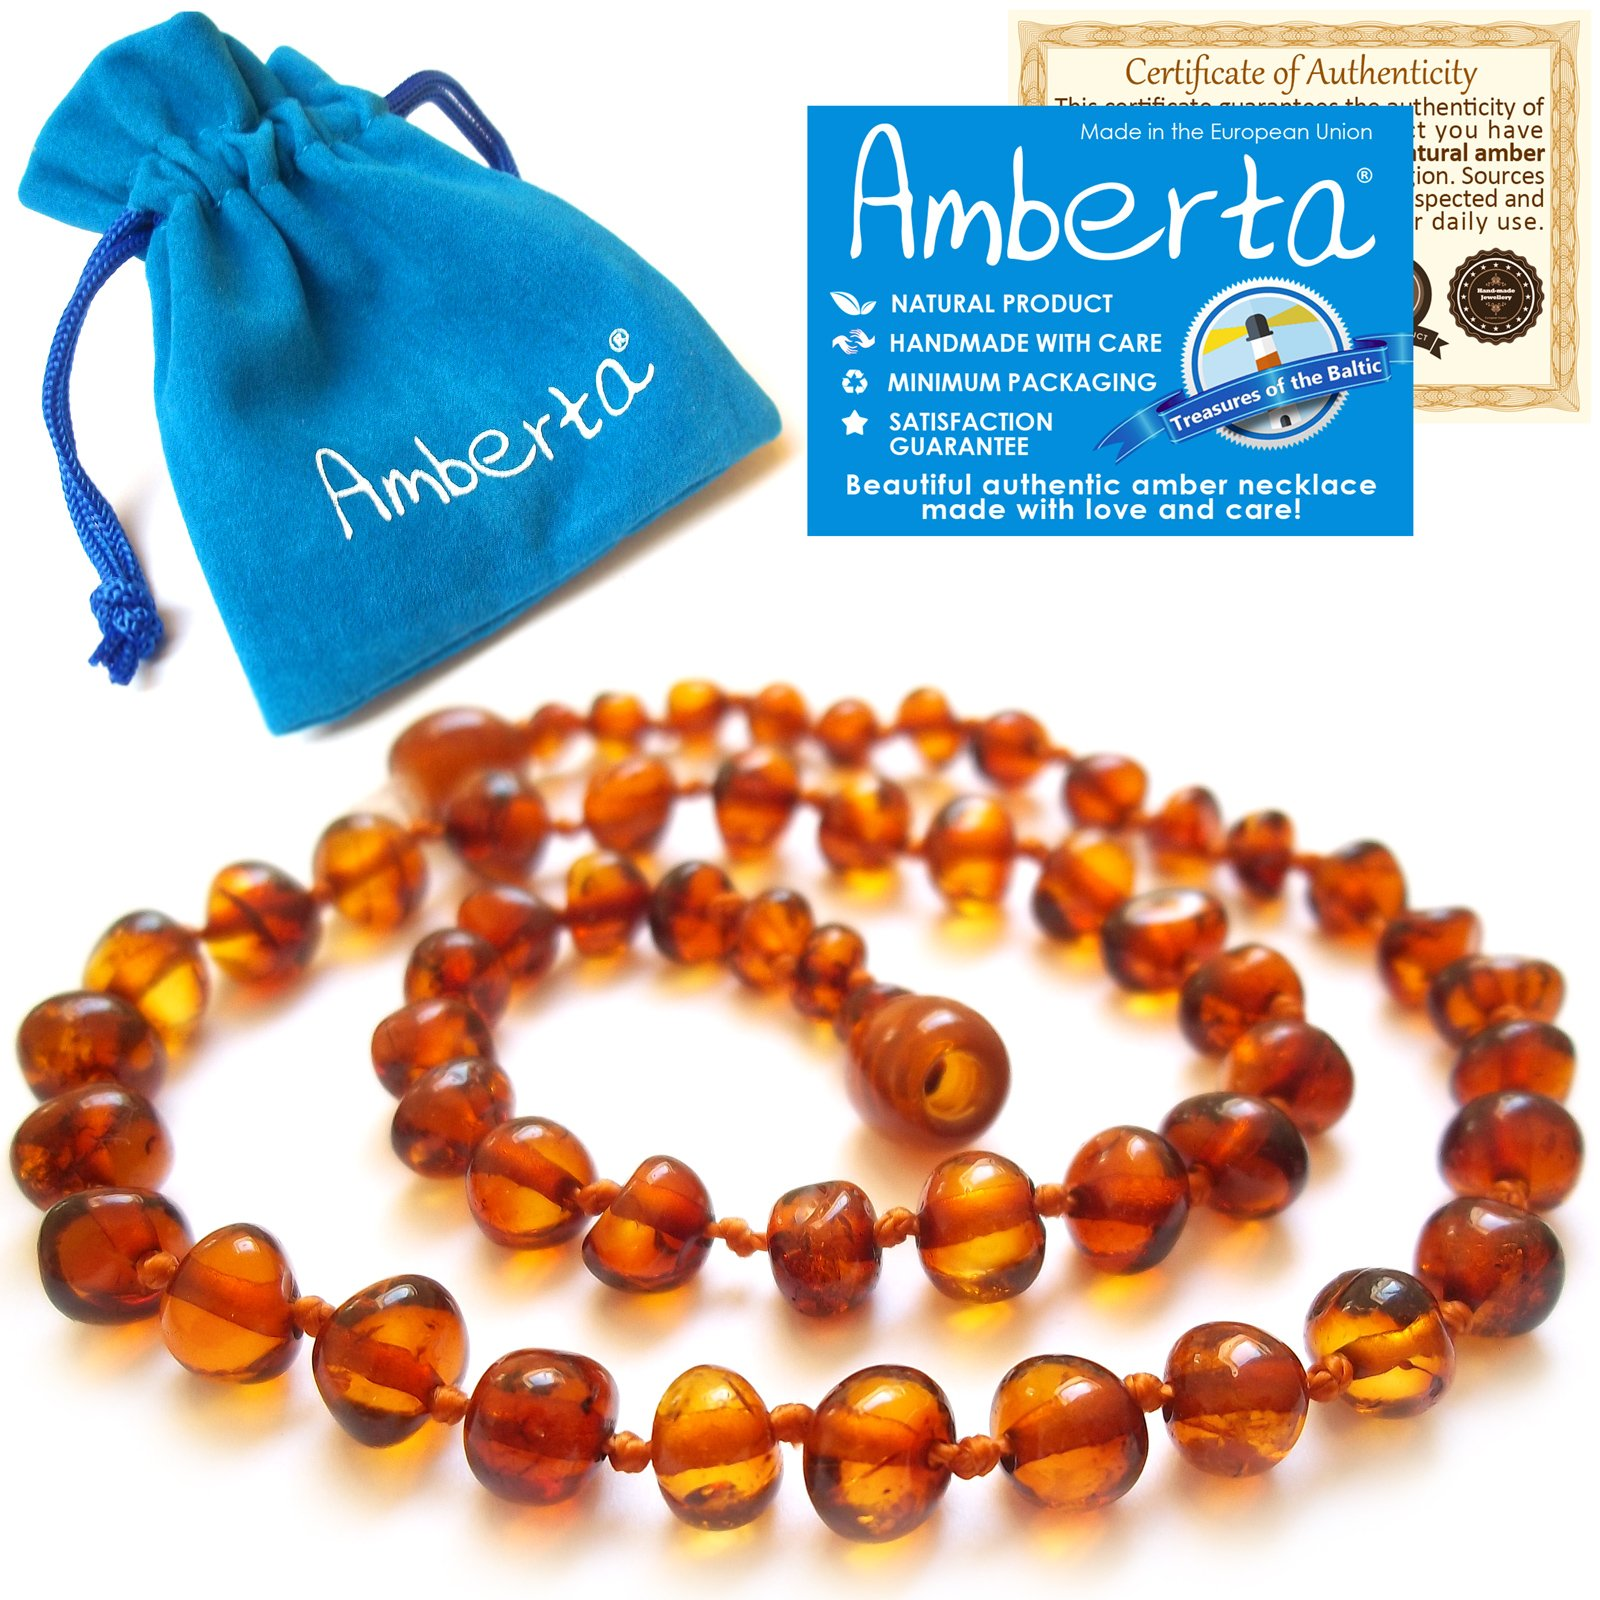 Amber Teething Necklace for Babies Amberta - Anti Inflammatory, Teething Discomfort & Drooling Relief, Natural Soothing Effect - 100% Pure Amber, Twist-in Screw Clasp, Handmade